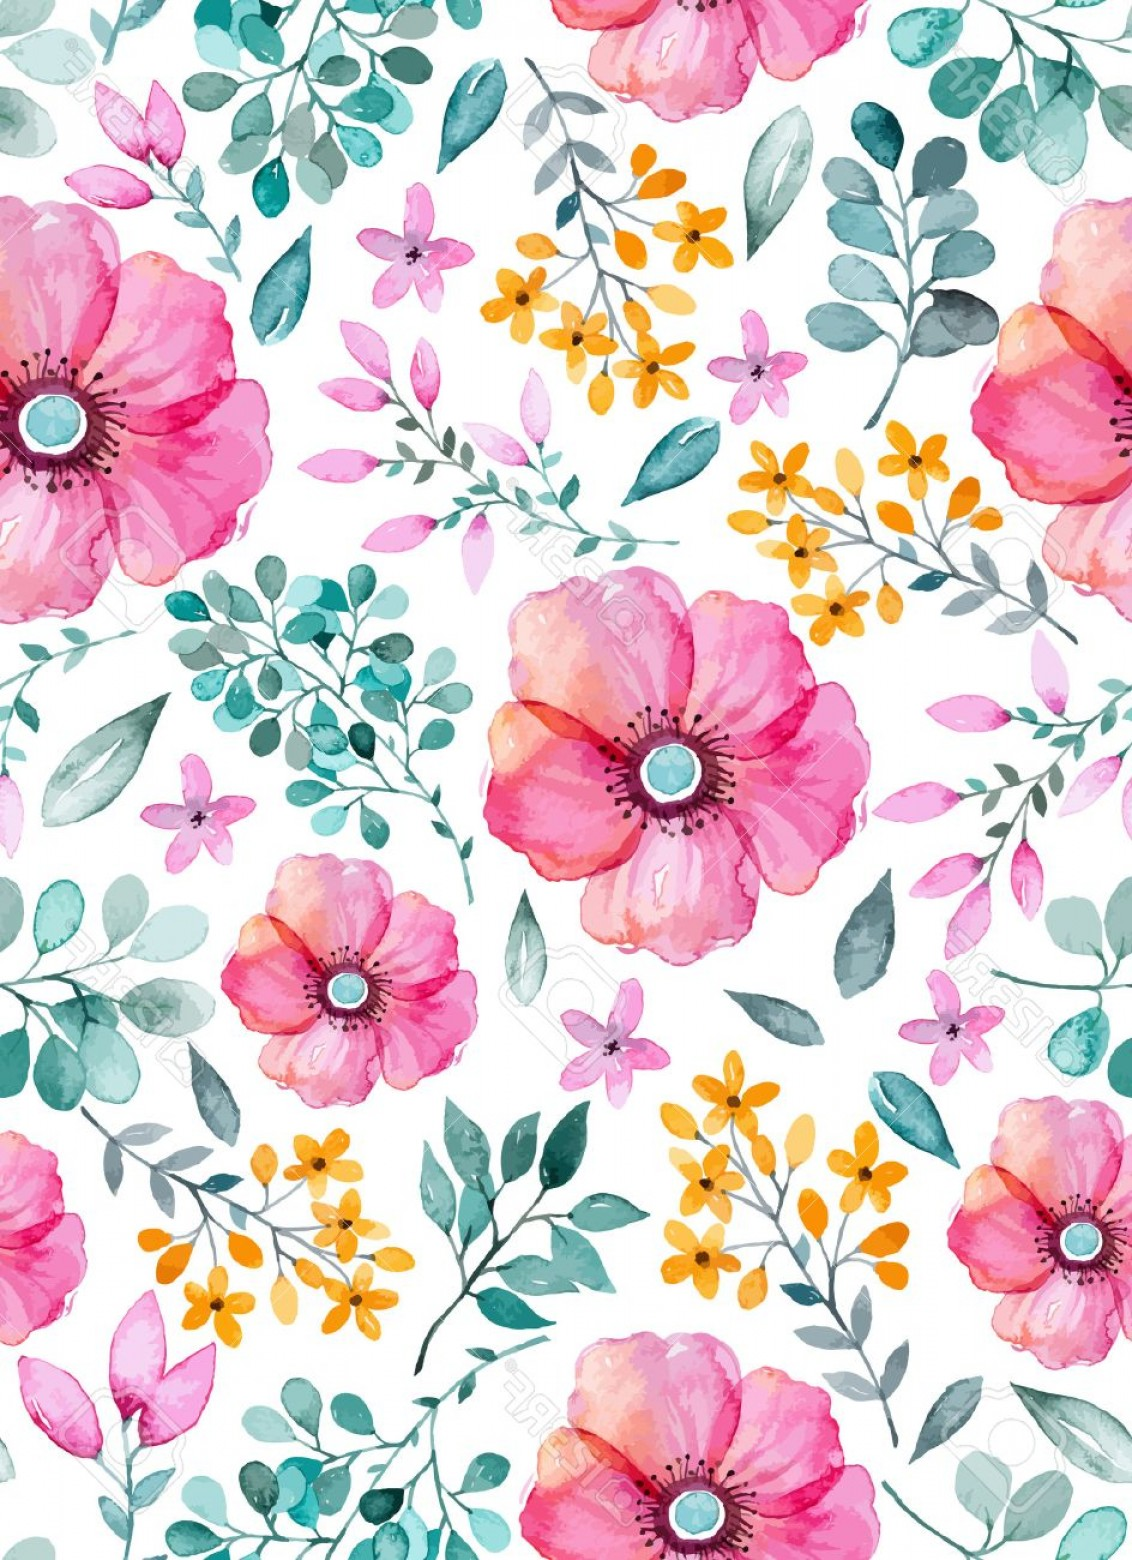 Watercolor Floral Background Vector: Photostock Vector Watercolor Floral Seamless Pattern With Flowers And Leafs Colorful Floral Vector Illustration Spring